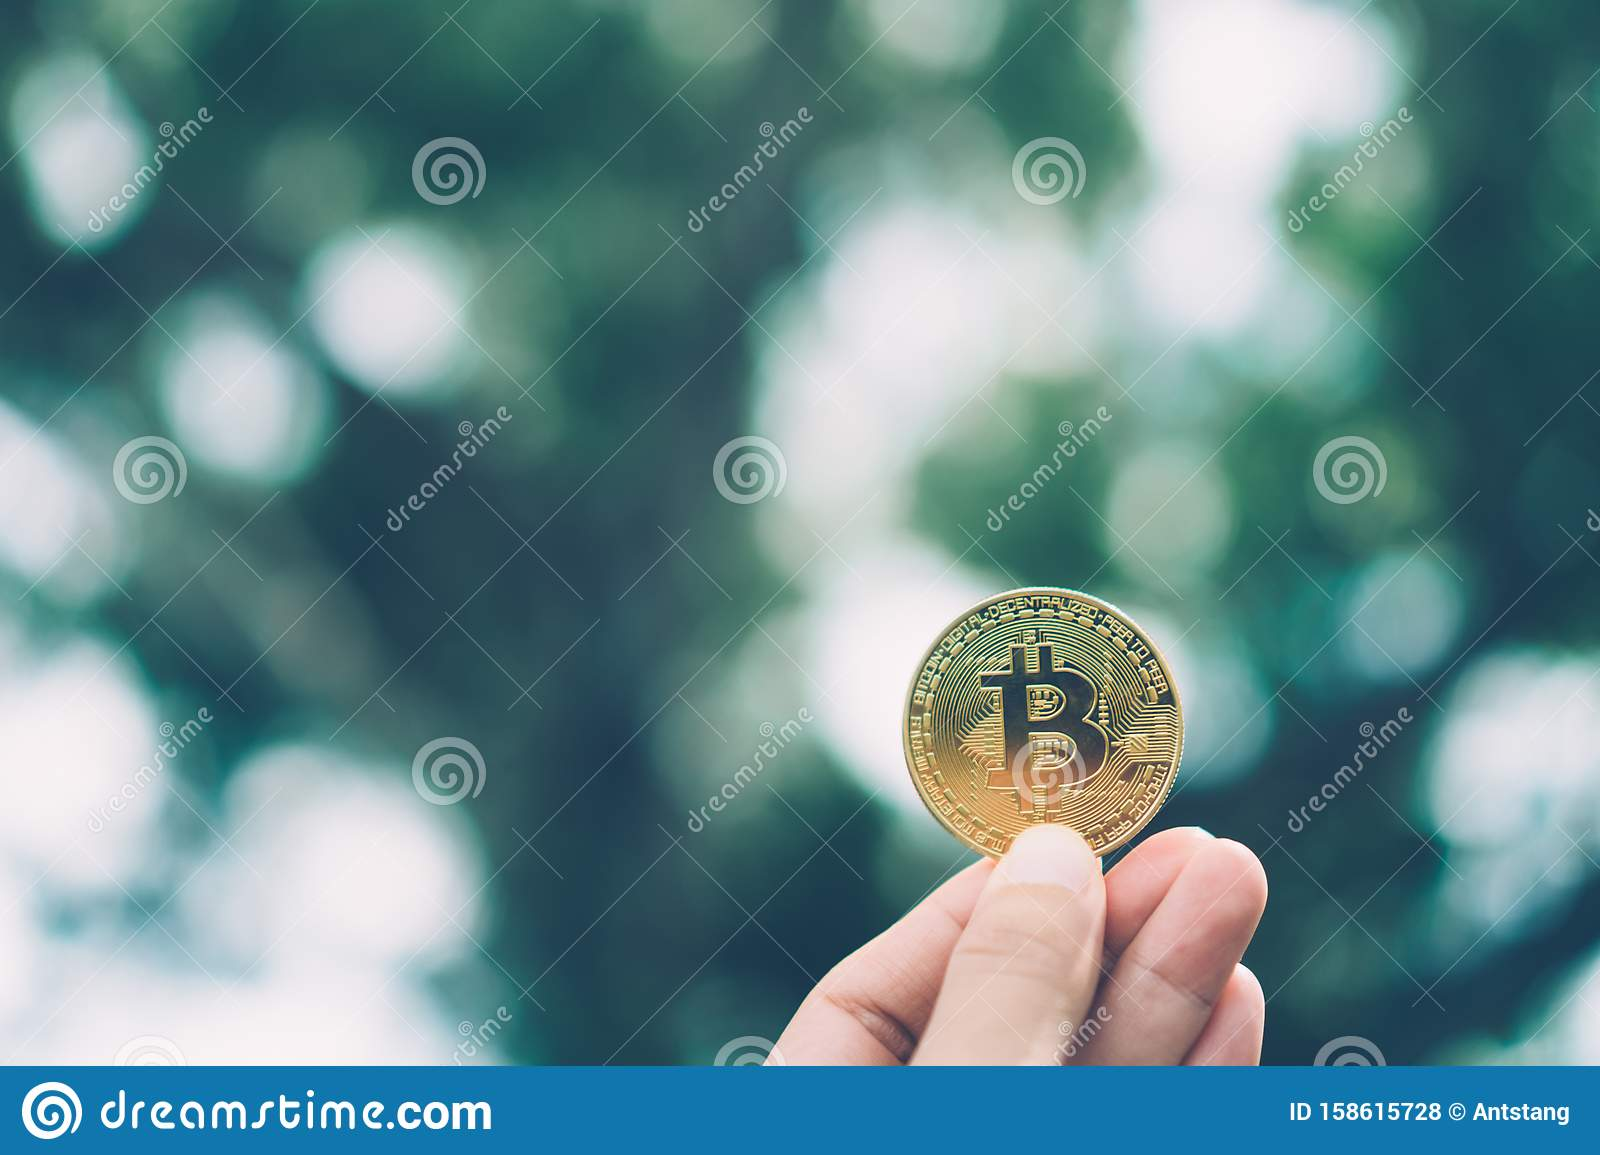 Bitcoins images of nature card index betting rules for limit